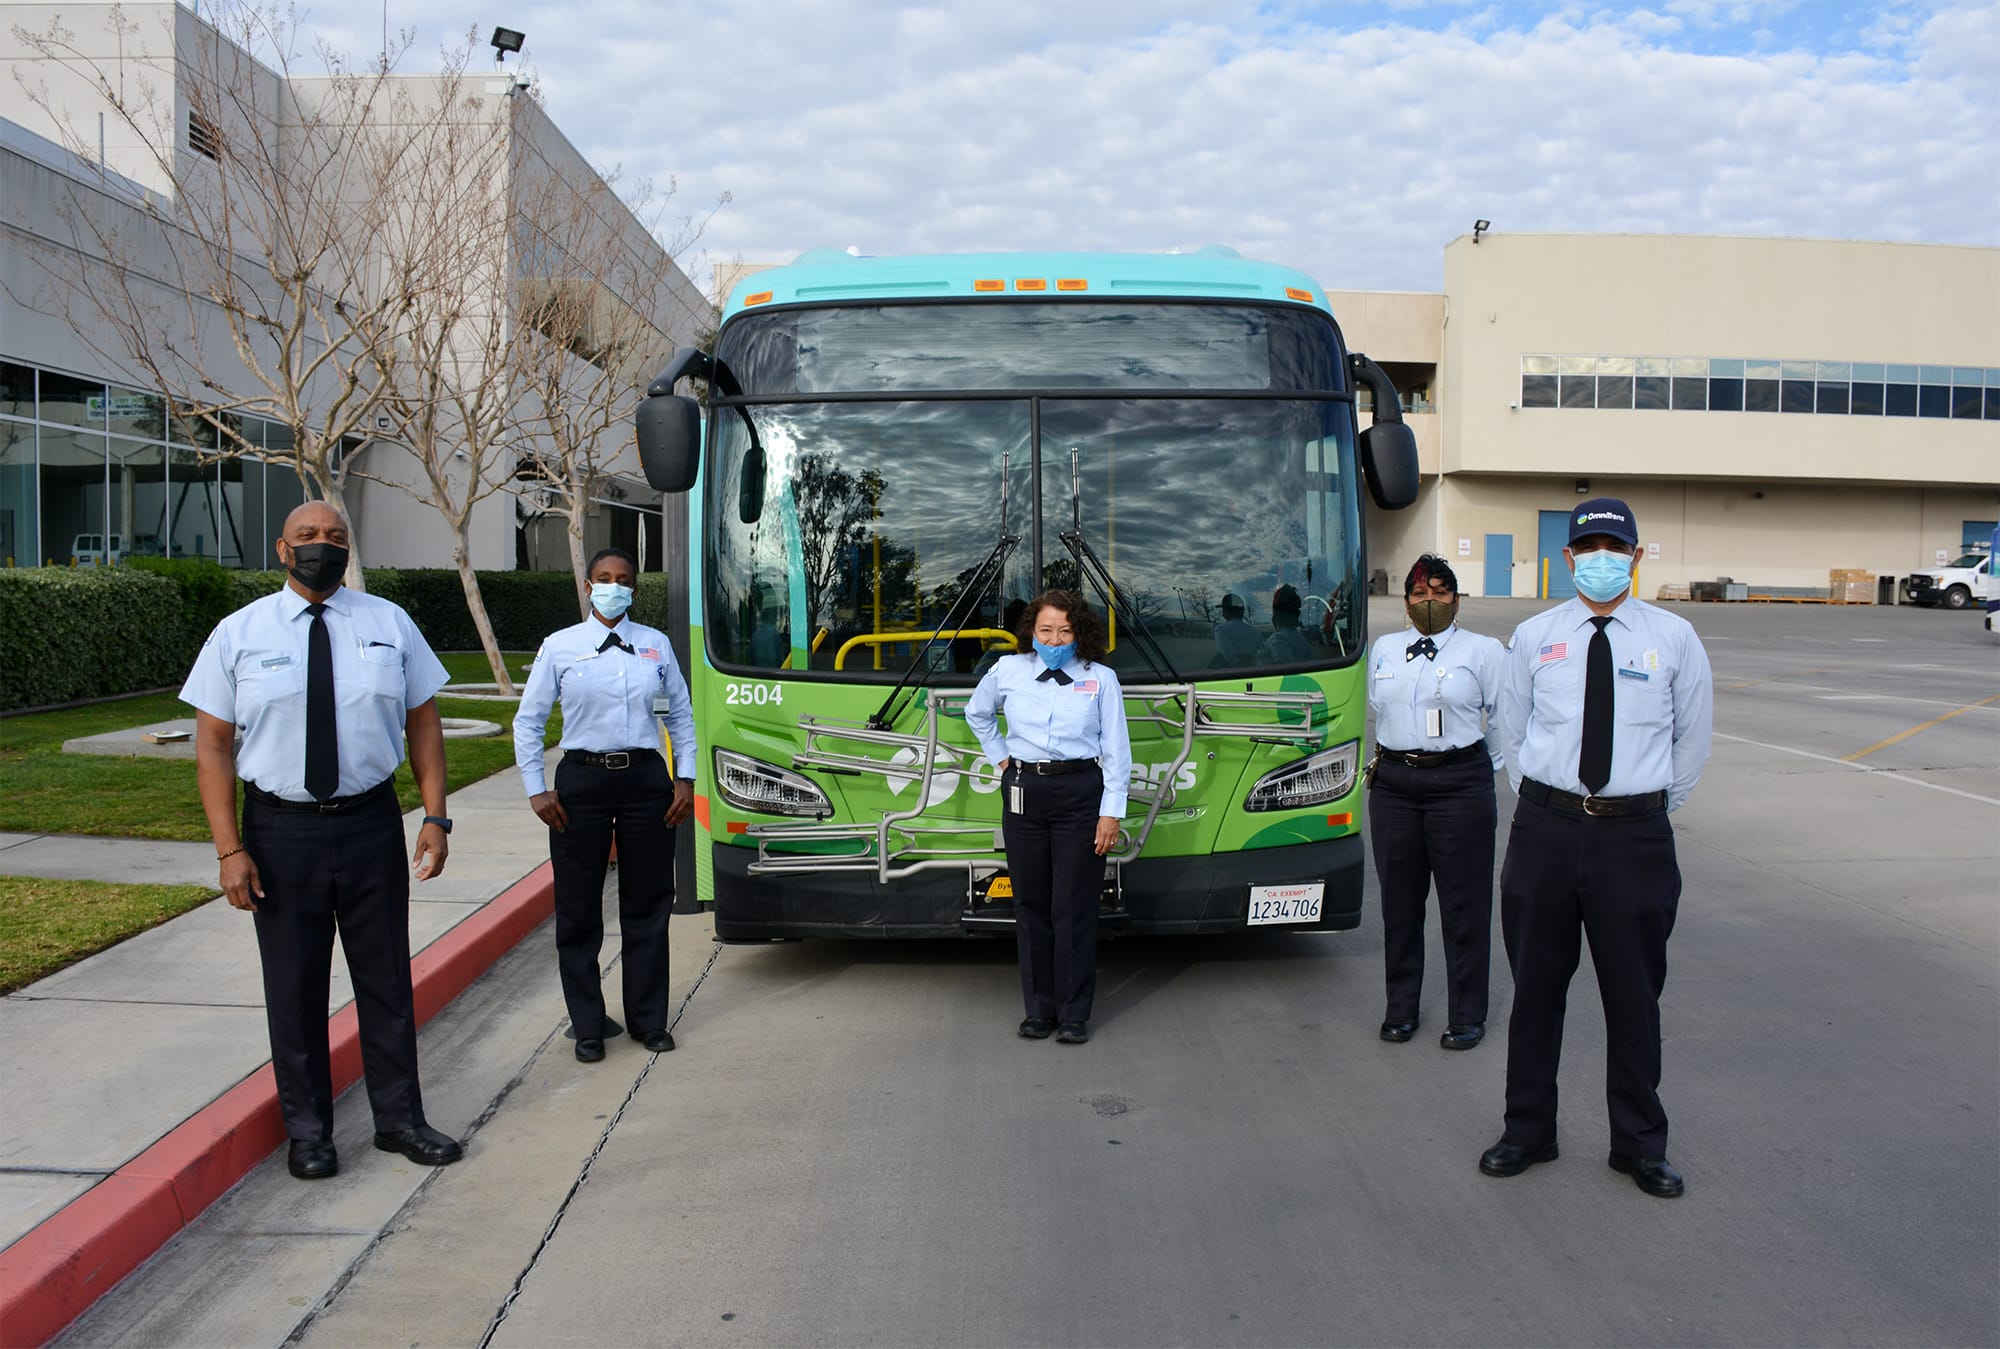 Million Mile Coach Operators Receive Award for Safe Driving Record